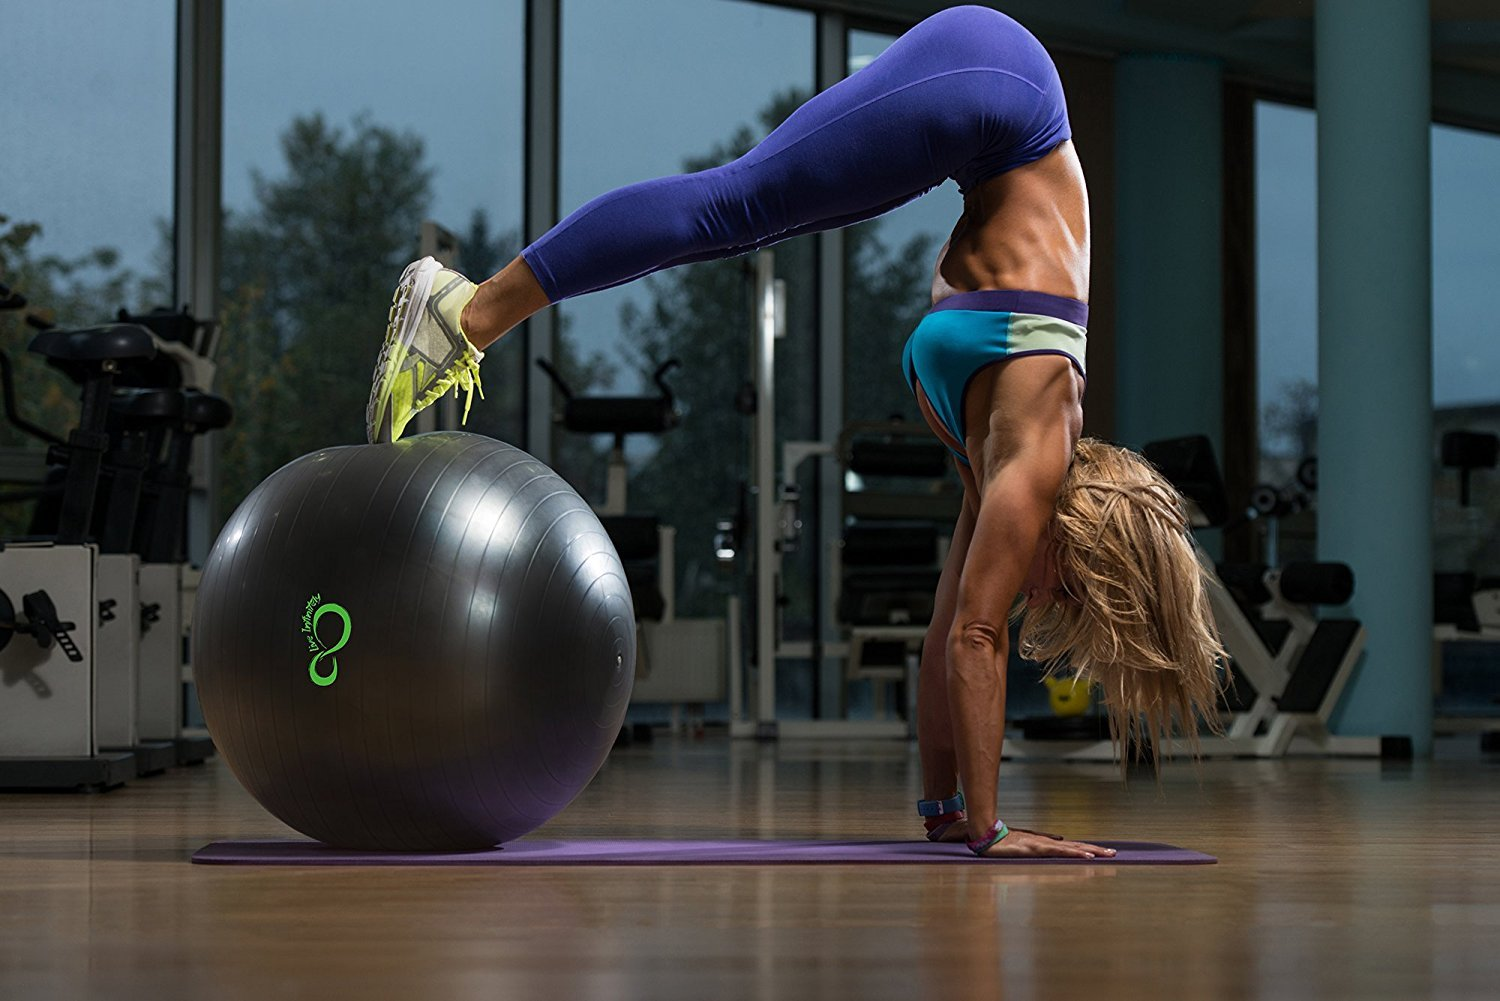 Live Infinitely Exercise Ball (55cm-95cm) Extra Thick Professional Grade Balance & Stability Ball- Anti Burst Tested Supports 2200lbs- Includes Hand Pump & Workout Guide Access Grey 95cm by Live Infinitely (Image #5)